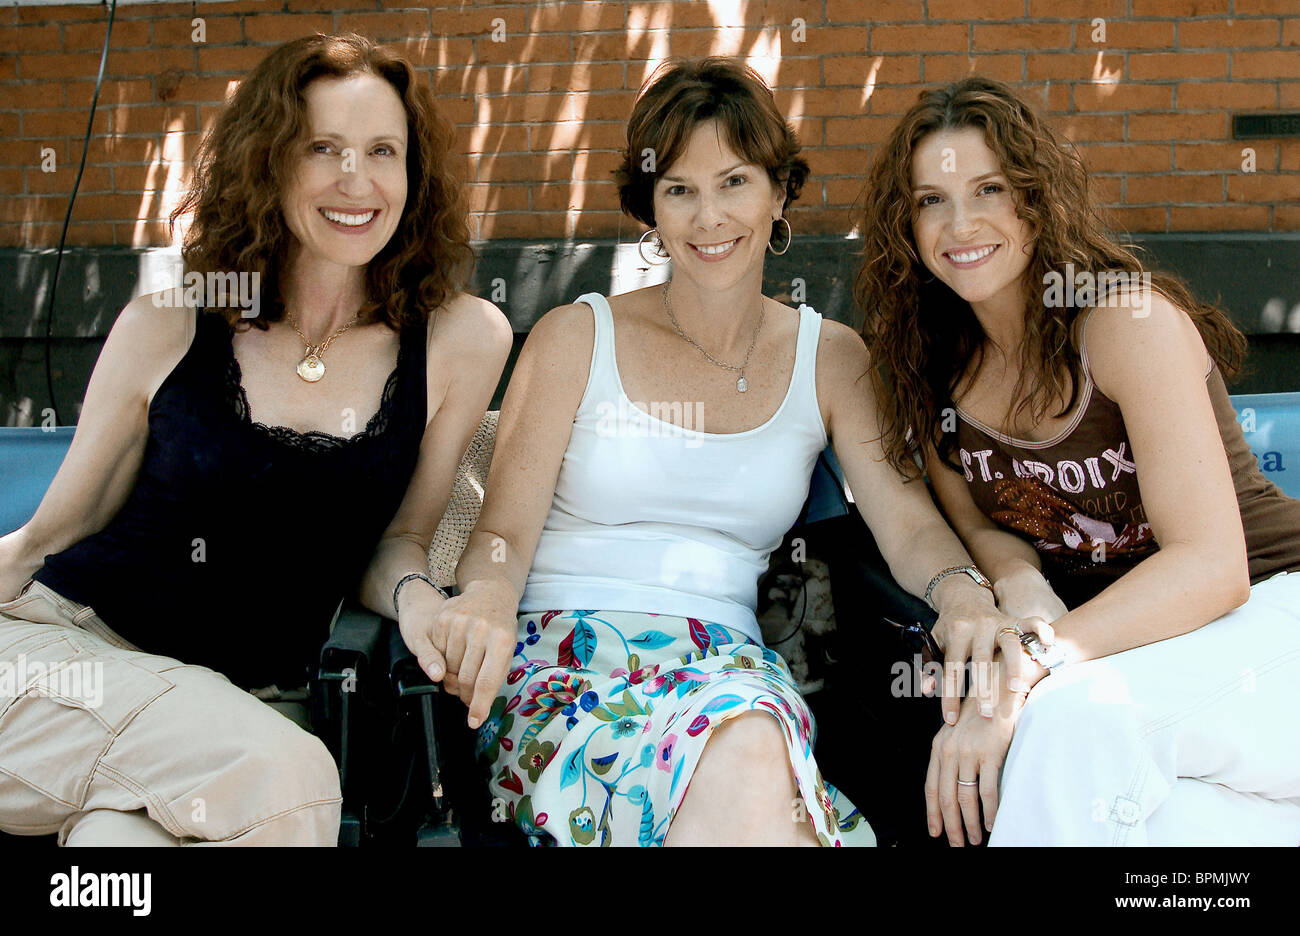 DONNA ARKOFF ROTH SUSAN ARNOLD & GINA MATTHEWS 13 GOING ON 30 (2004) - Stock Image